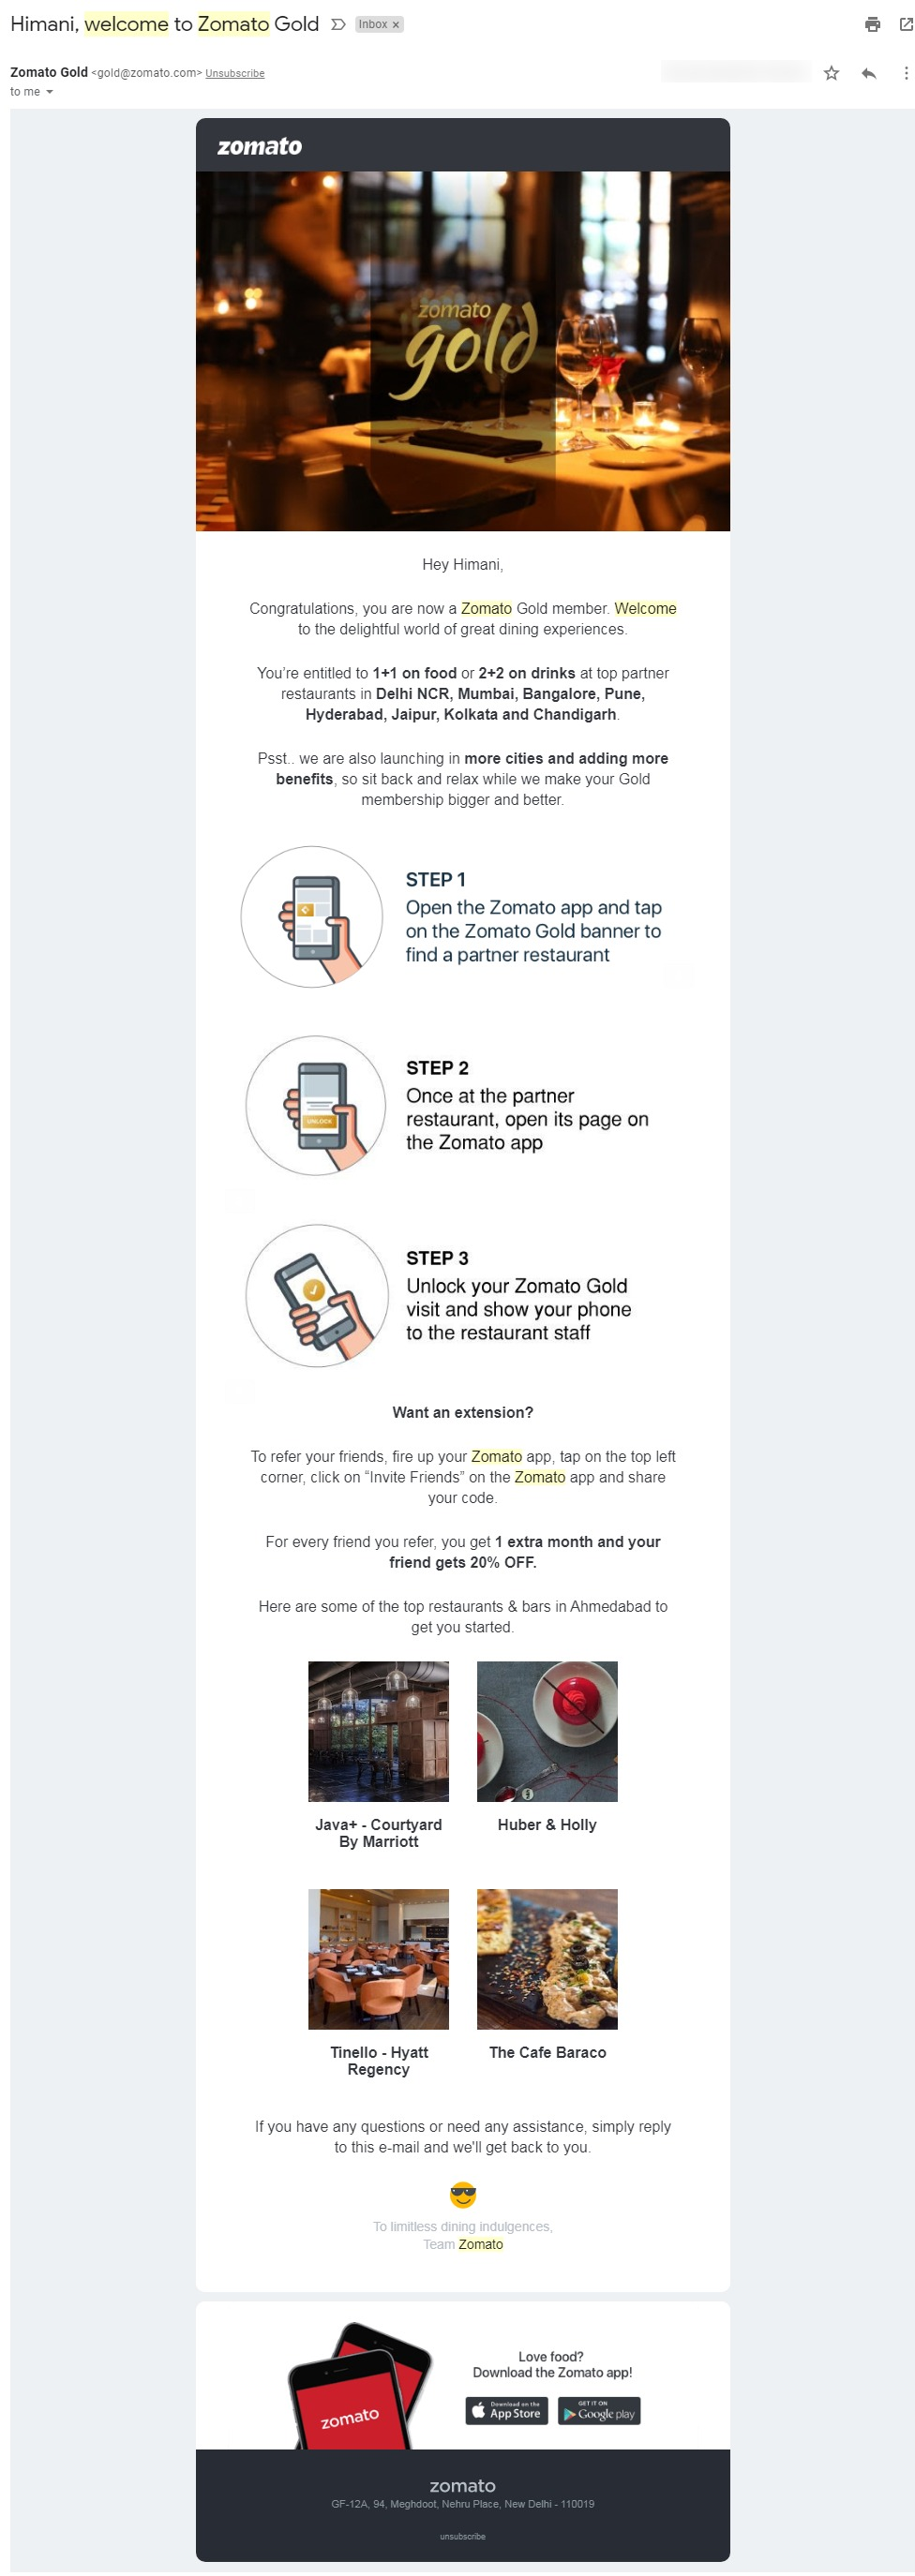 Welcome Email Example by Zomato - an eCommerce brand